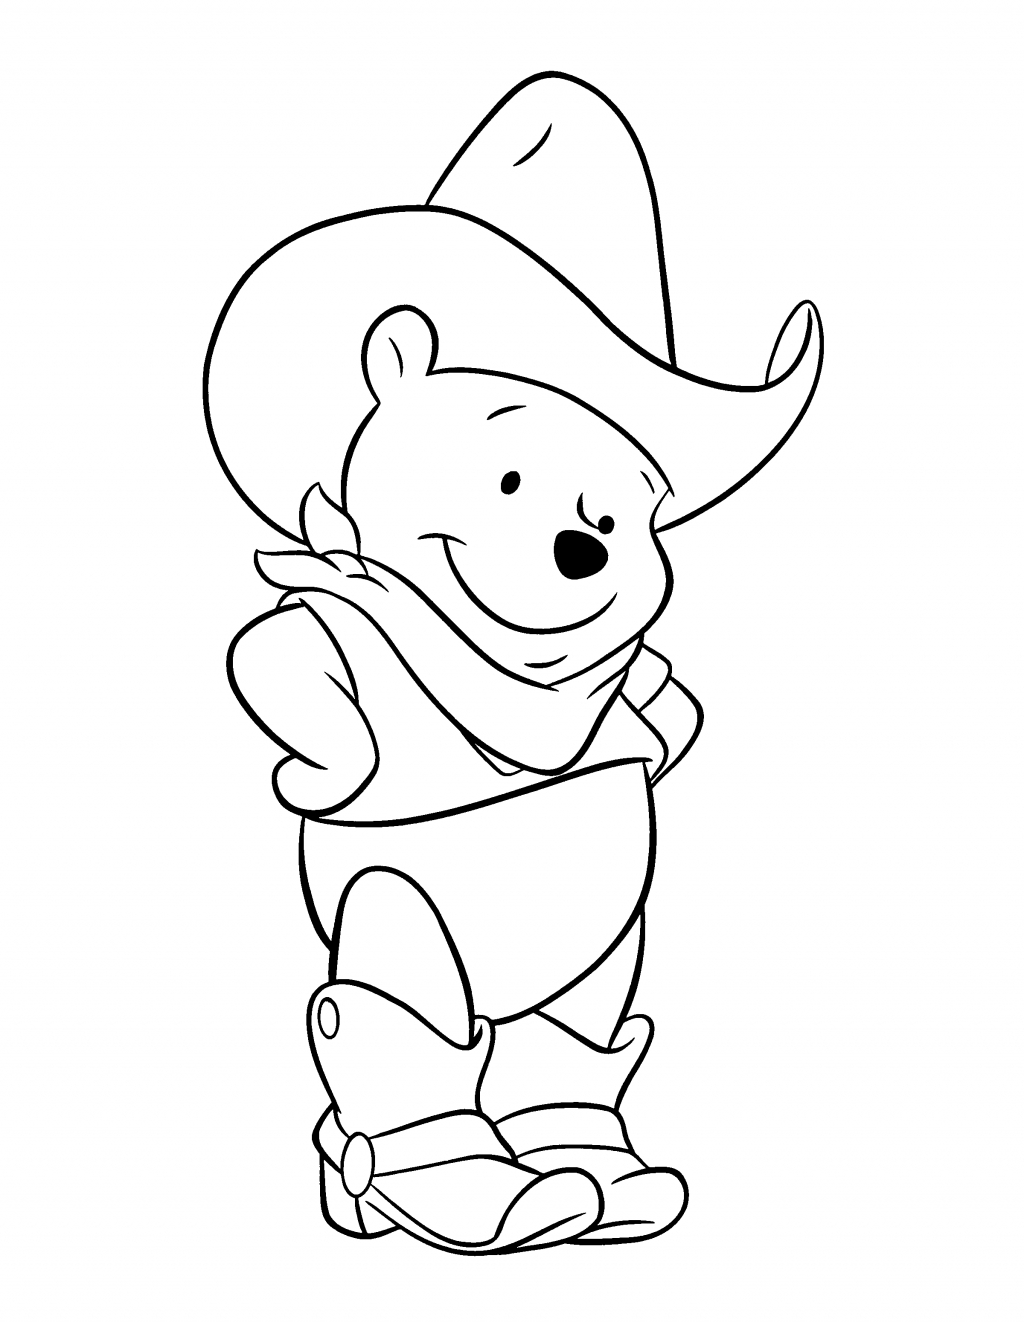 Pooh Coloring Pages Winnie The 1024x1322 I Love Your Cowboy Heart Rodeo39s Are Always Fun With You